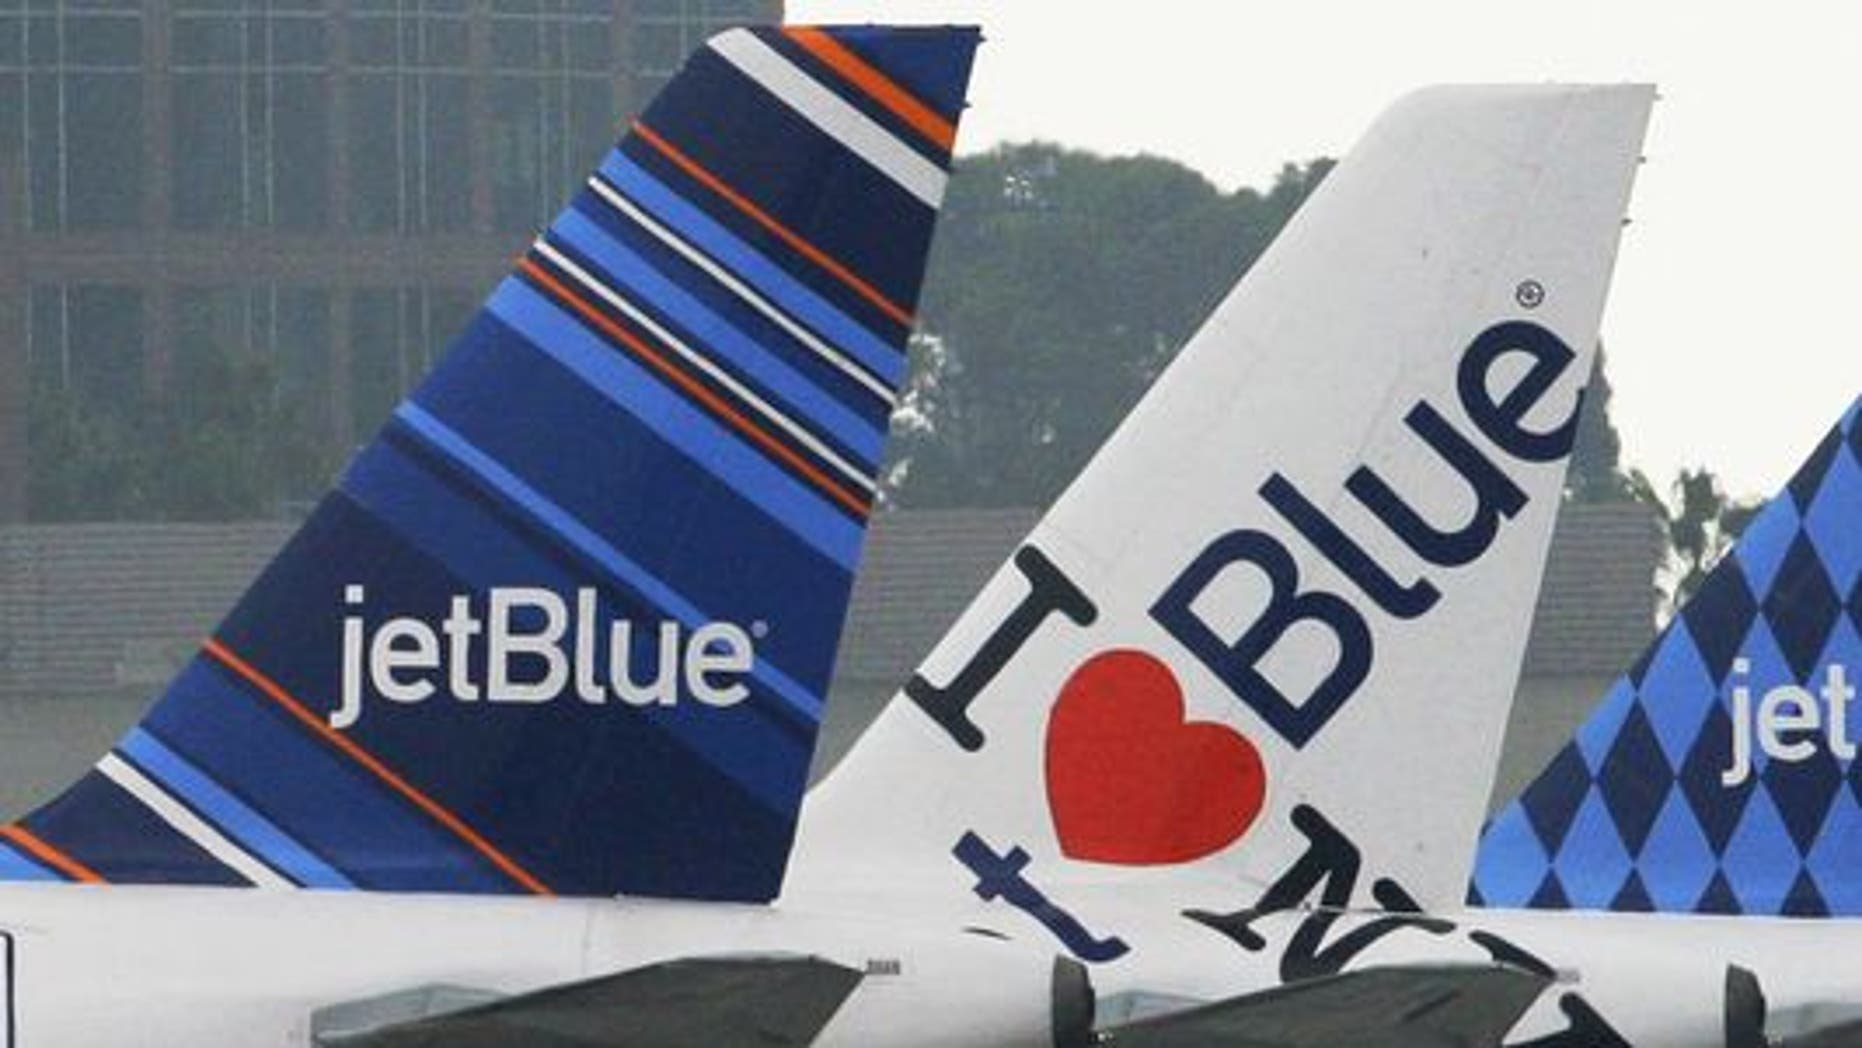 JetBlue rewarded passengers who put up with crying babies.